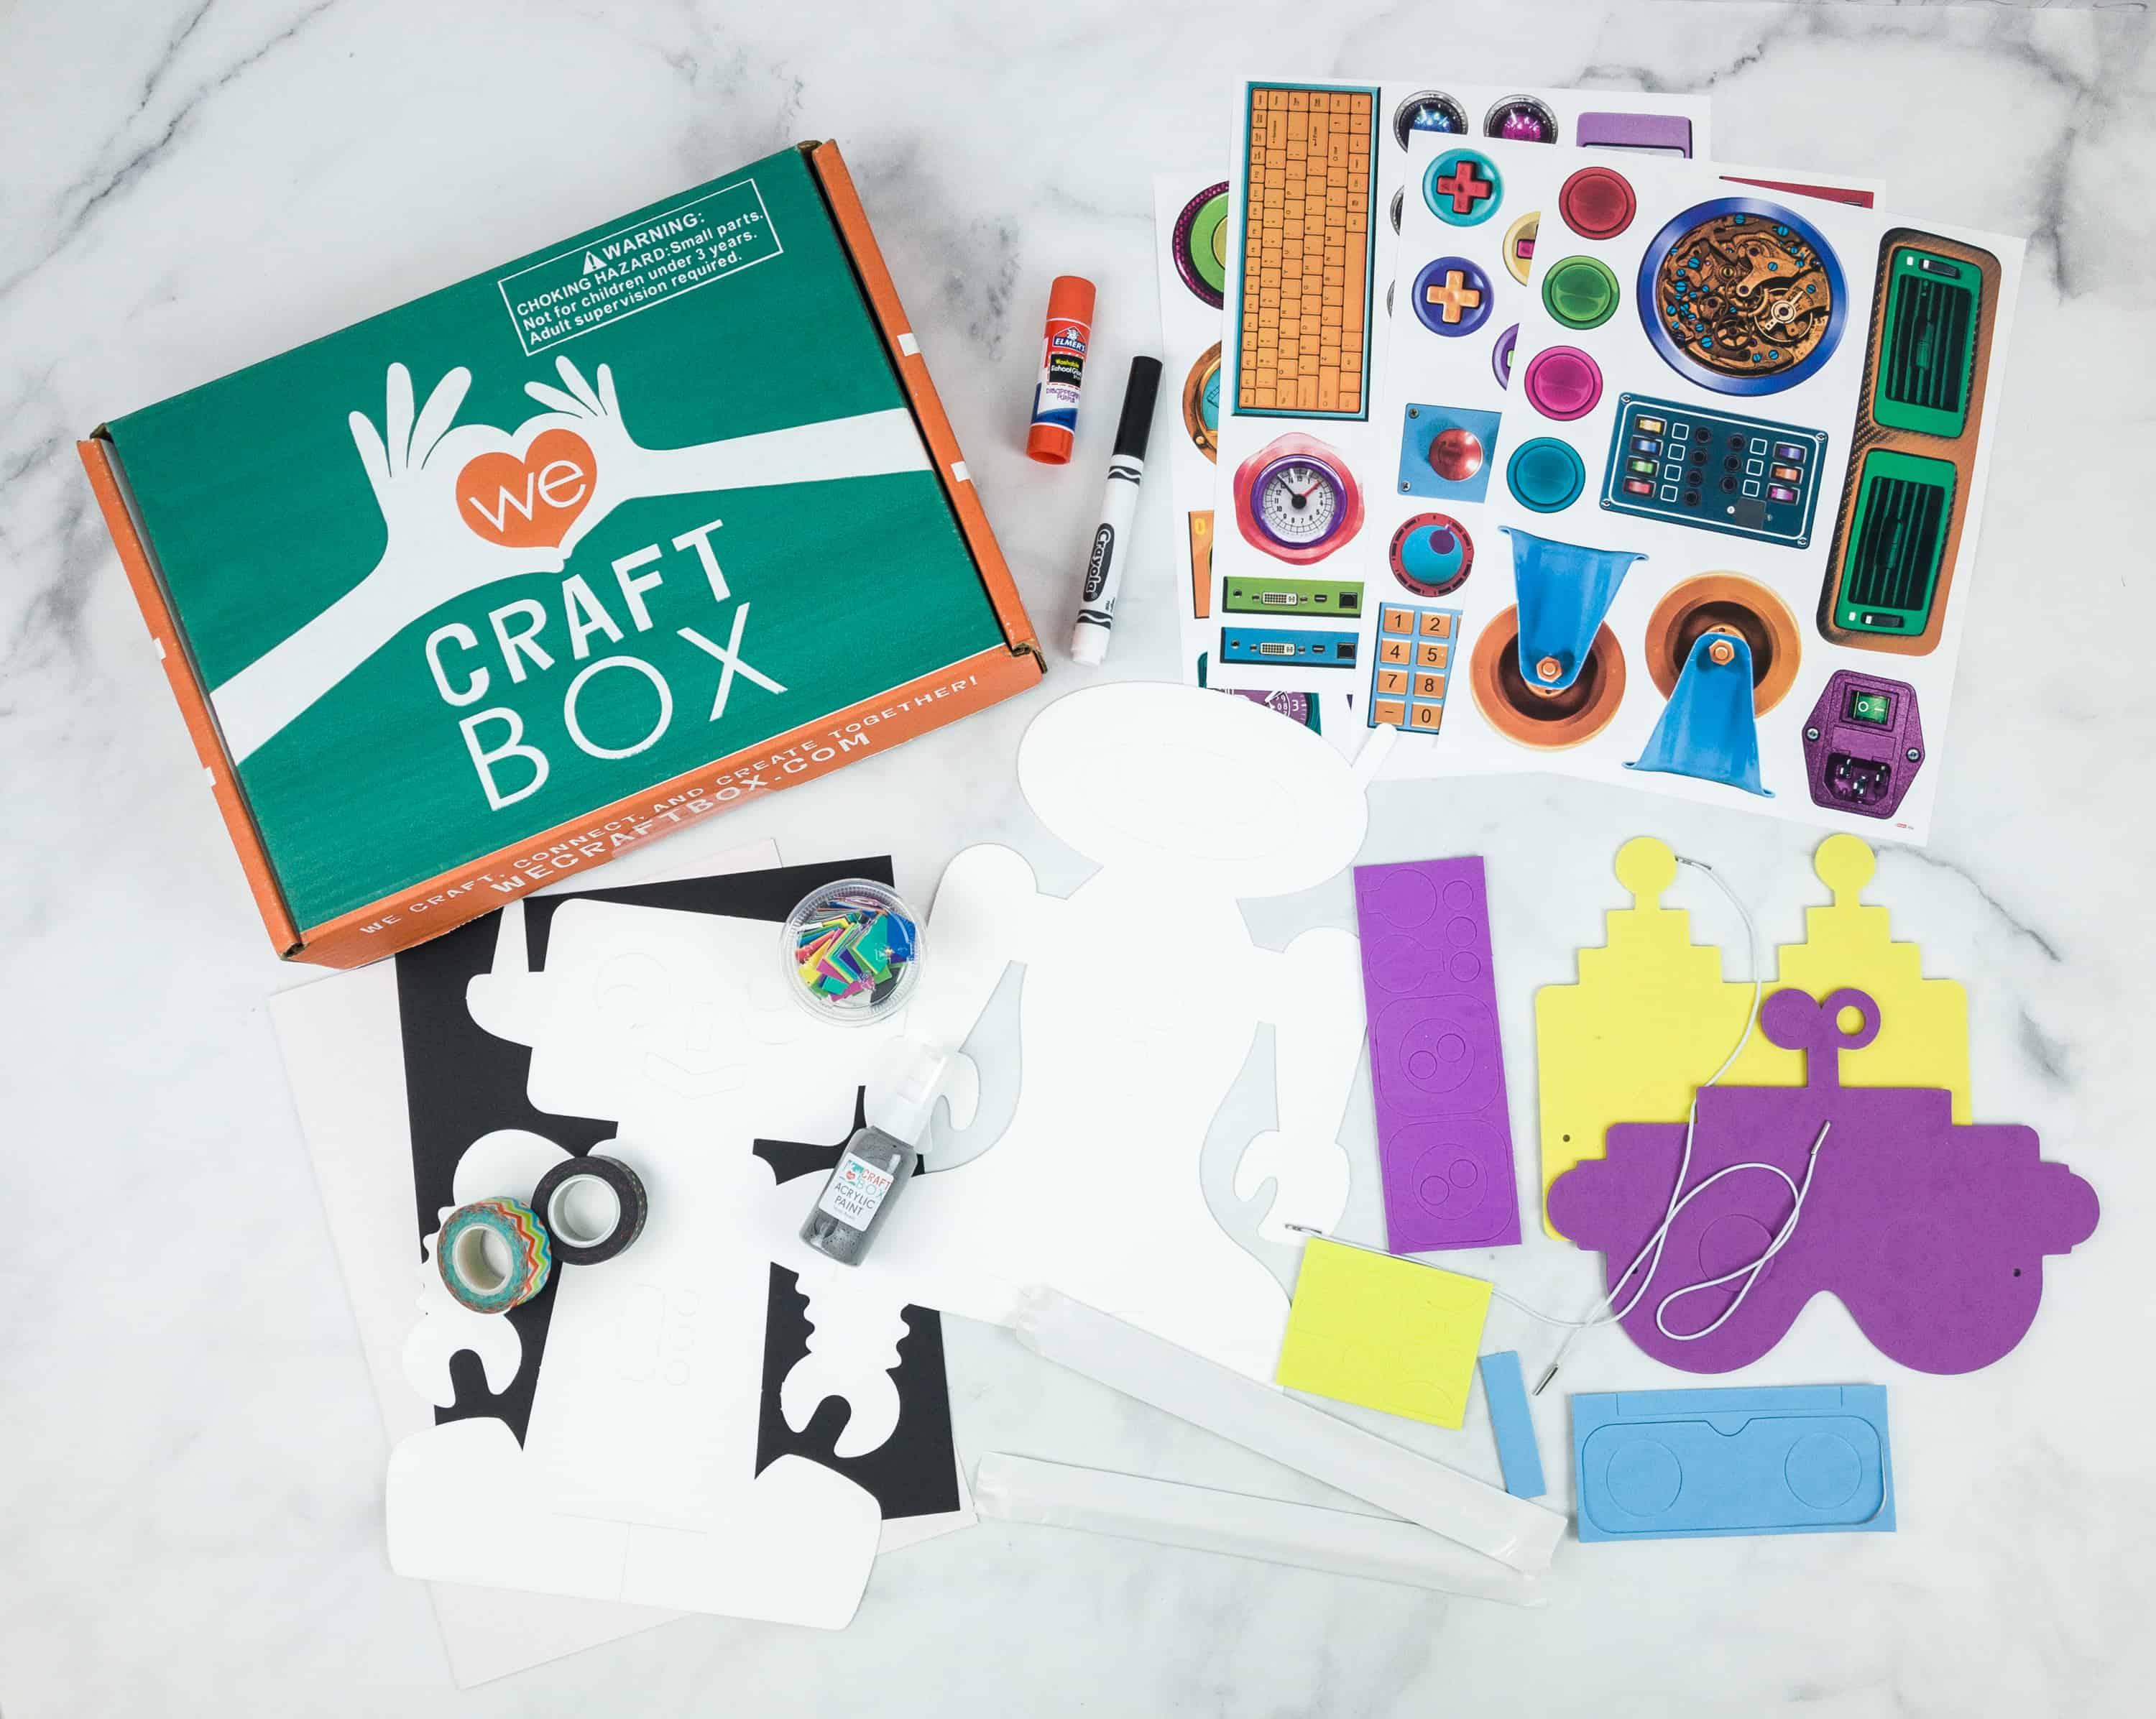 We Craft Box Black Friday Deal: Get $10 off All Orders of We Craft Box